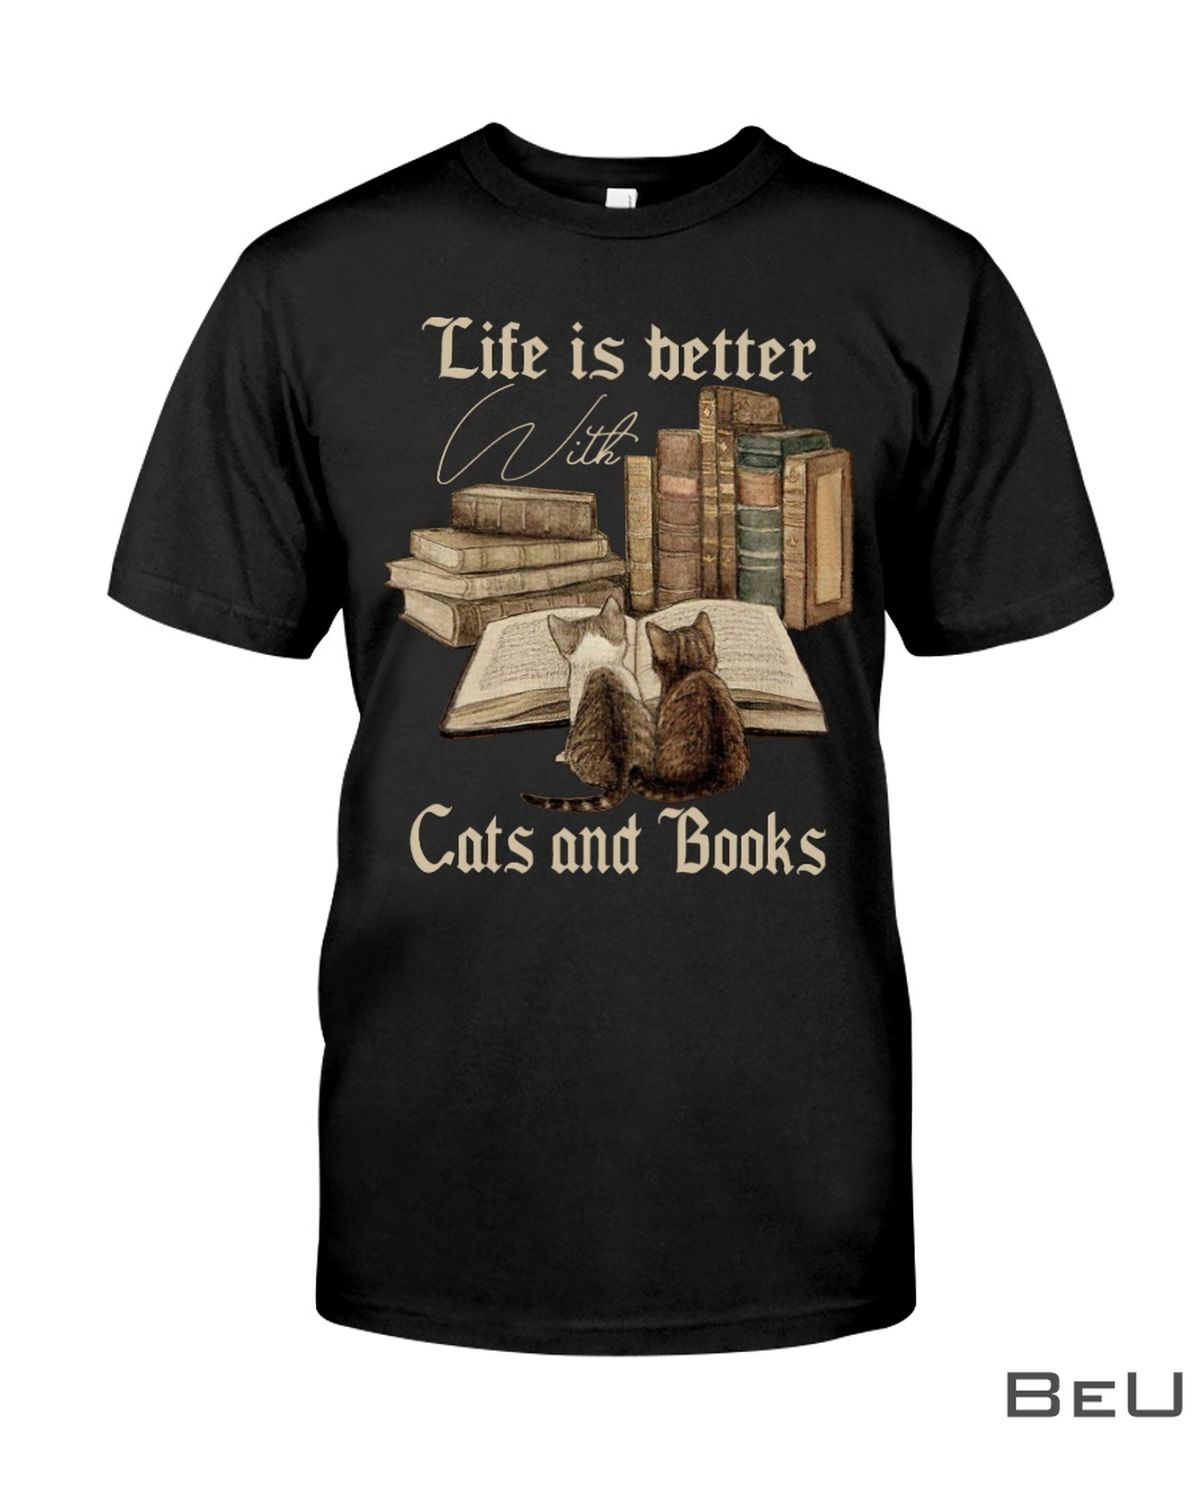 Life Is Better With Cats And Books Shirt, hoodie, tank top